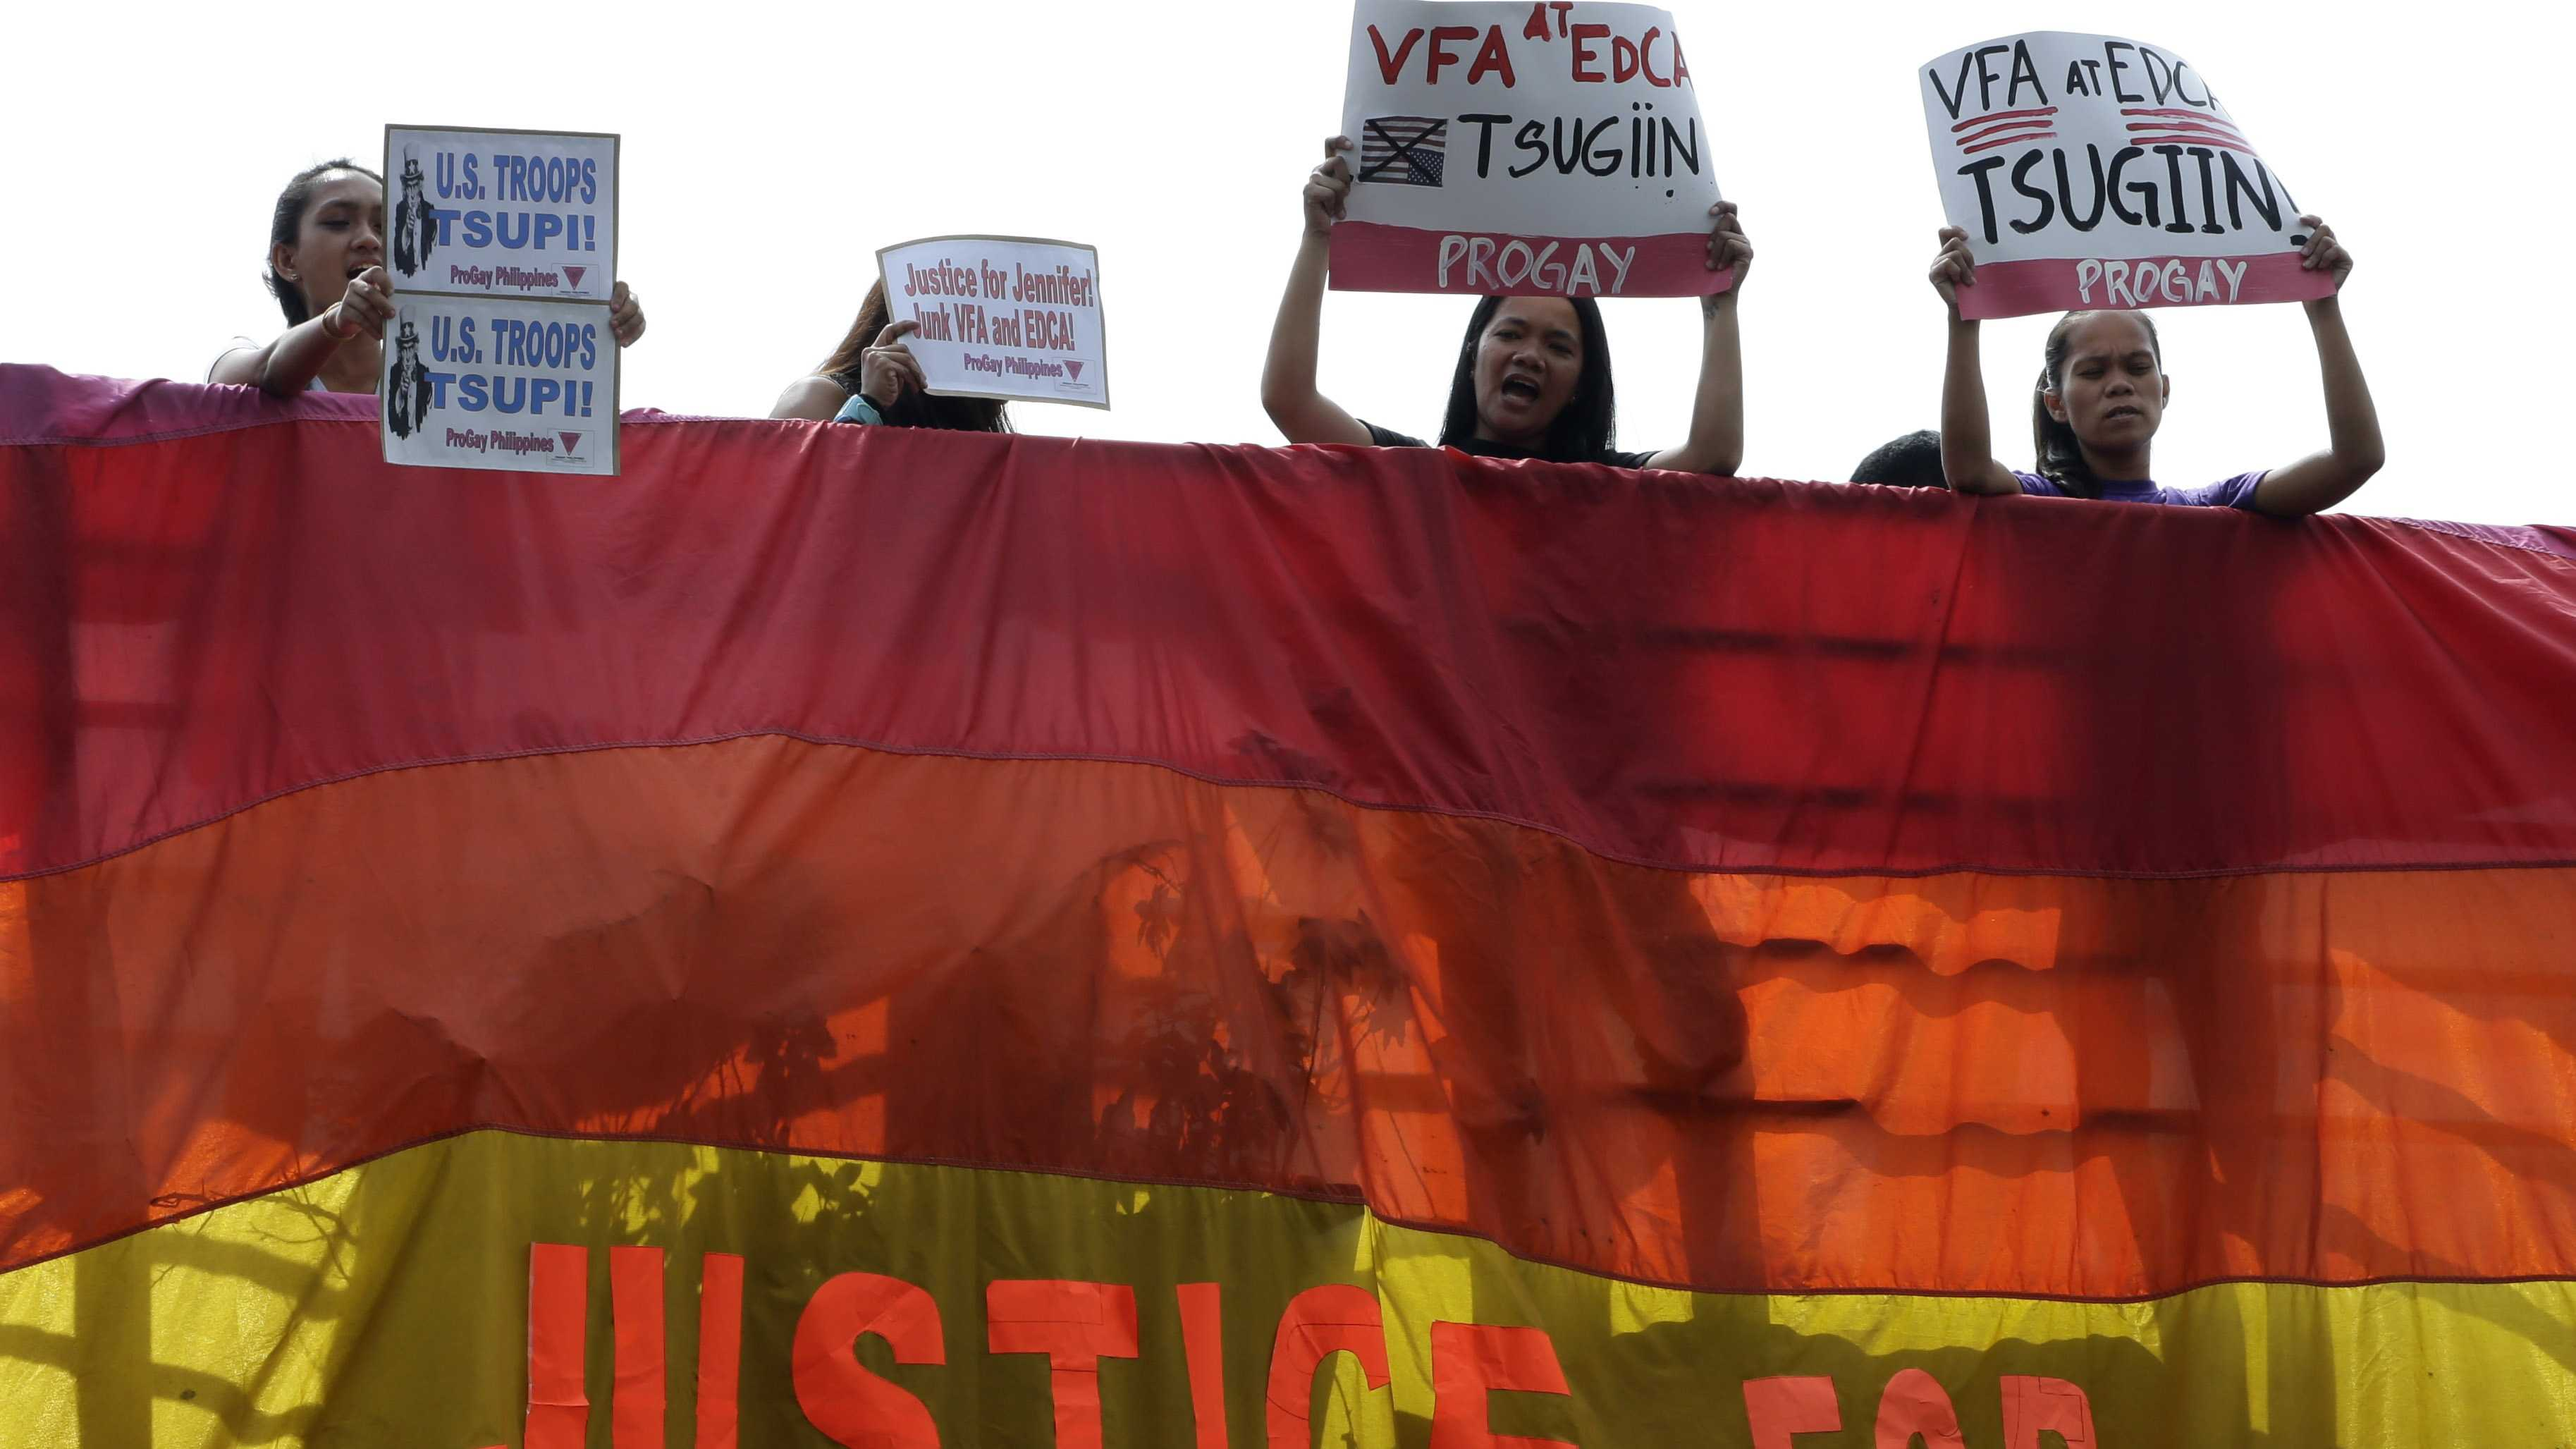 Protesters hang a rainbow banner from the foot bridge near the U.S. Embassy to demand justice for the Oct. 11, 2014 killing of Filipino transgender Jennifer Laude at the former US naval base of Subic northwest of Manila, Monday, Dec. 1, 2014.